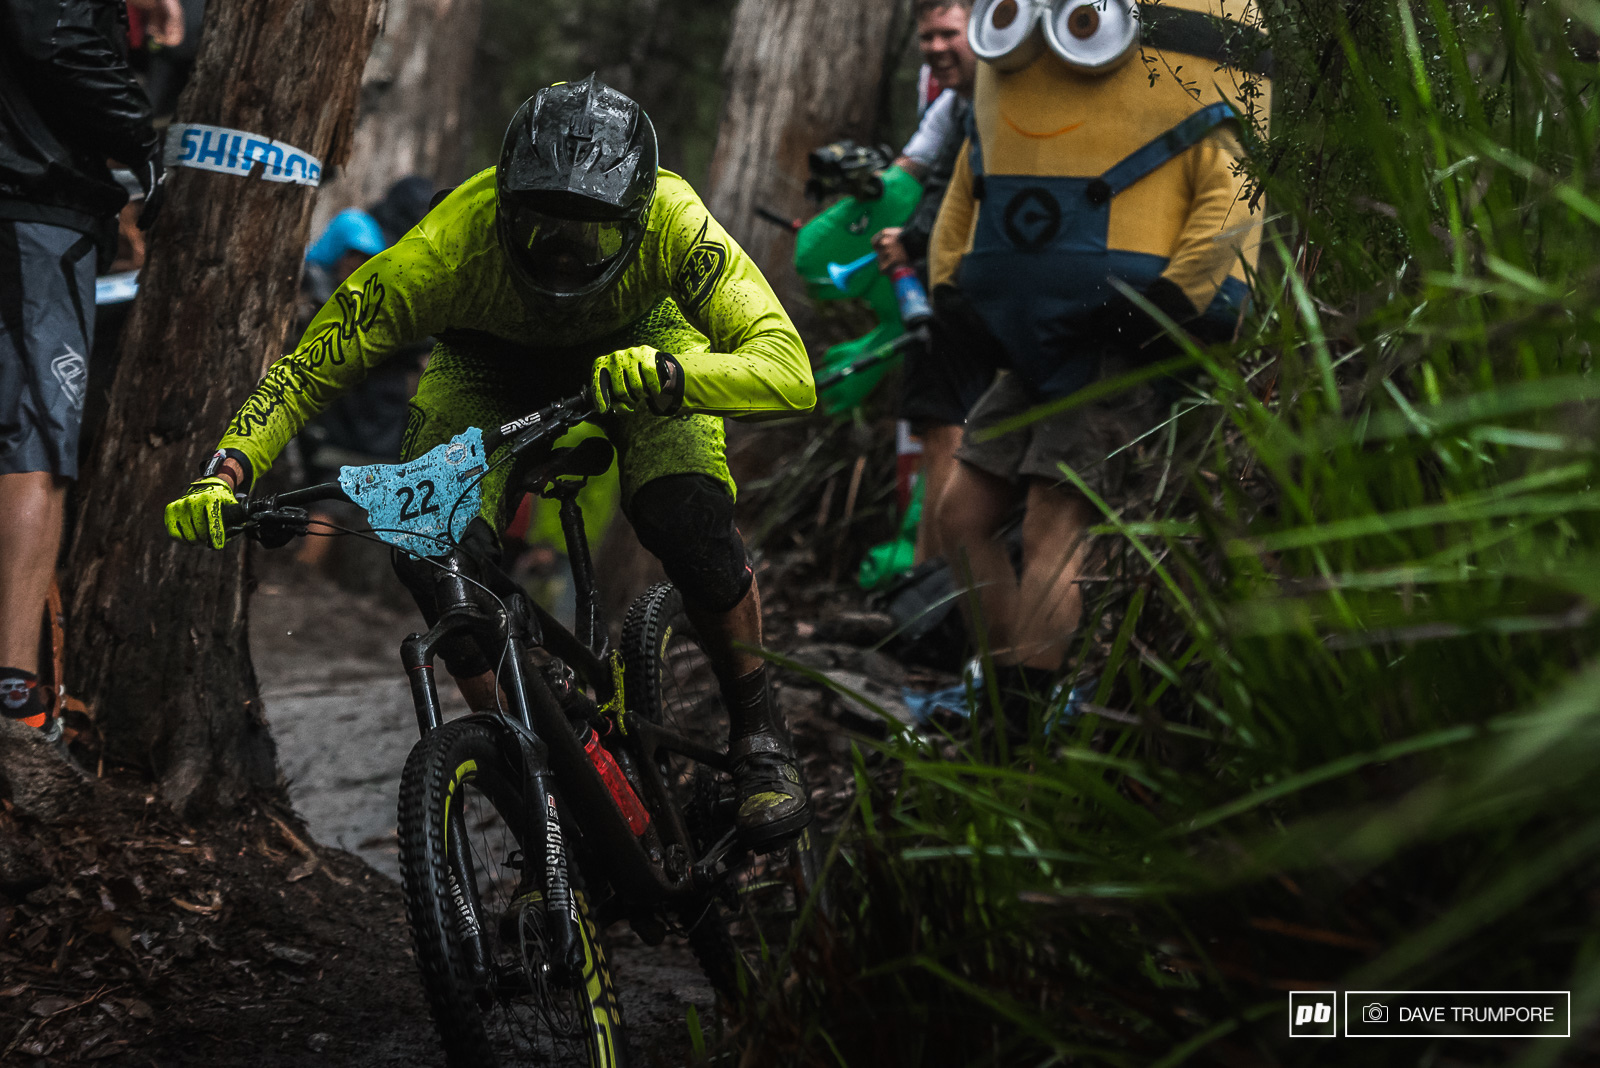 Jack Moir showing his skill and fitness with a 10th in Tasmania. Will we see the DH racer contest more rounds now that he sits high up in the points